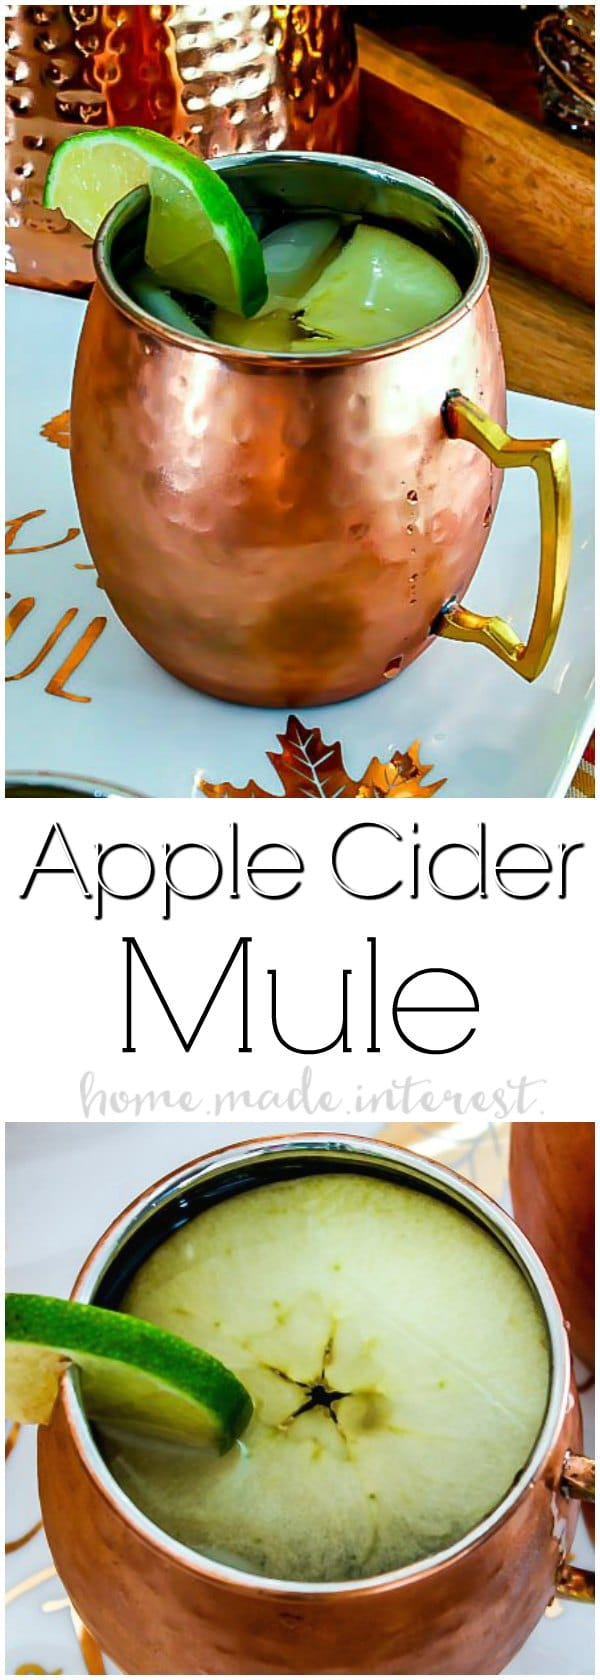 Apple Cider Mule - This Apple Cider Mule is going to be your favorite fall cocktail recipe! Apple Cider, vodka and ginger beer combined to make a fall moscow mule. Need a Halloween party cocktail or Halloween drink recipe? Your friends are going to love this fall cocktail recipe!